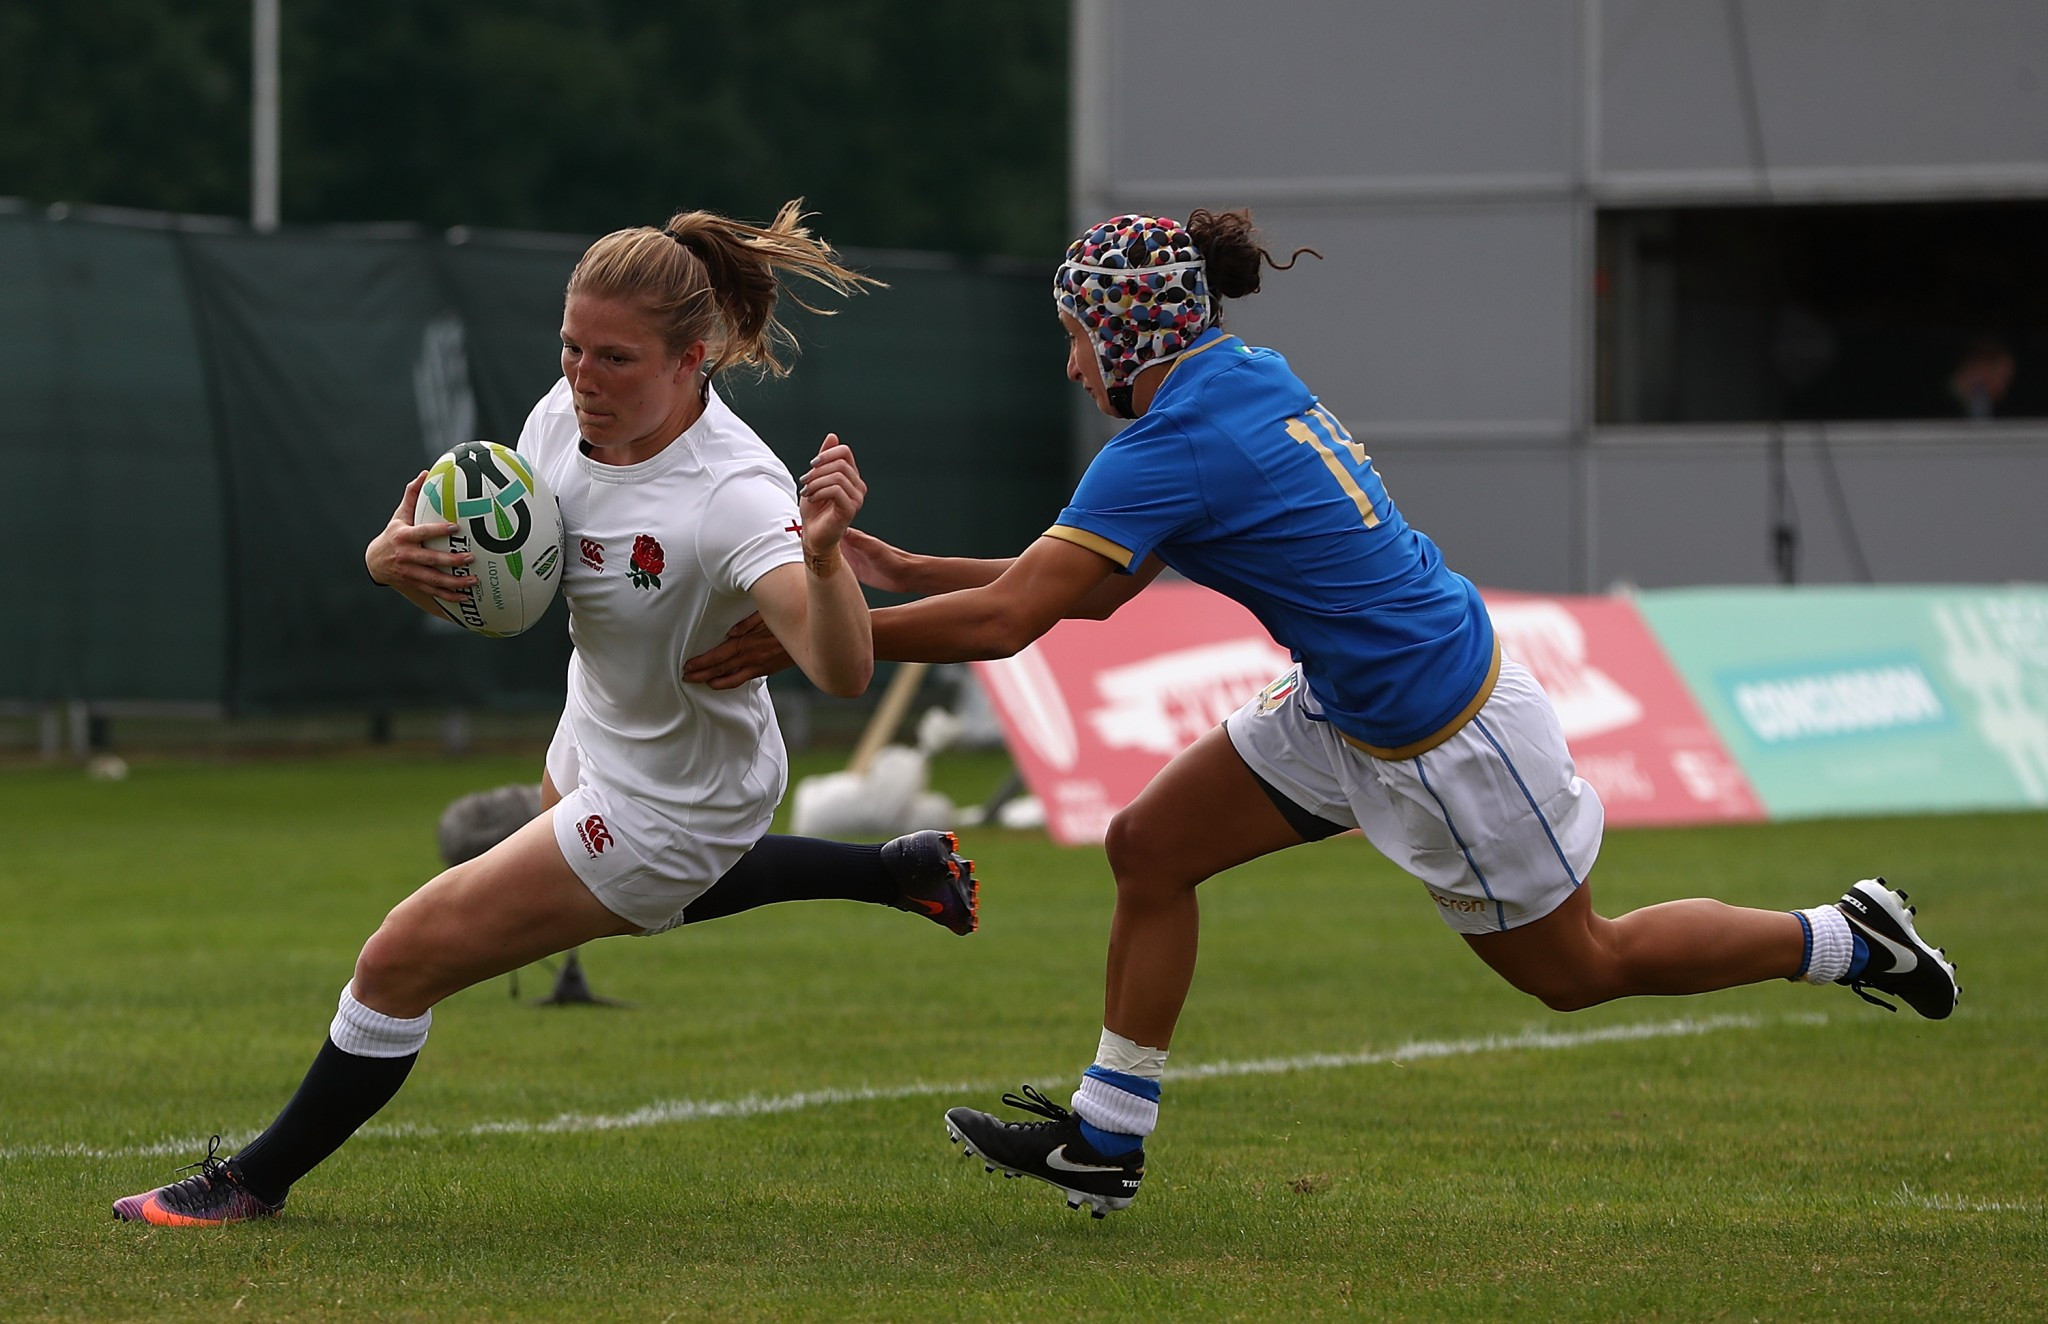 Holders England prove too strong for Italy at Women's Rugby World Cup